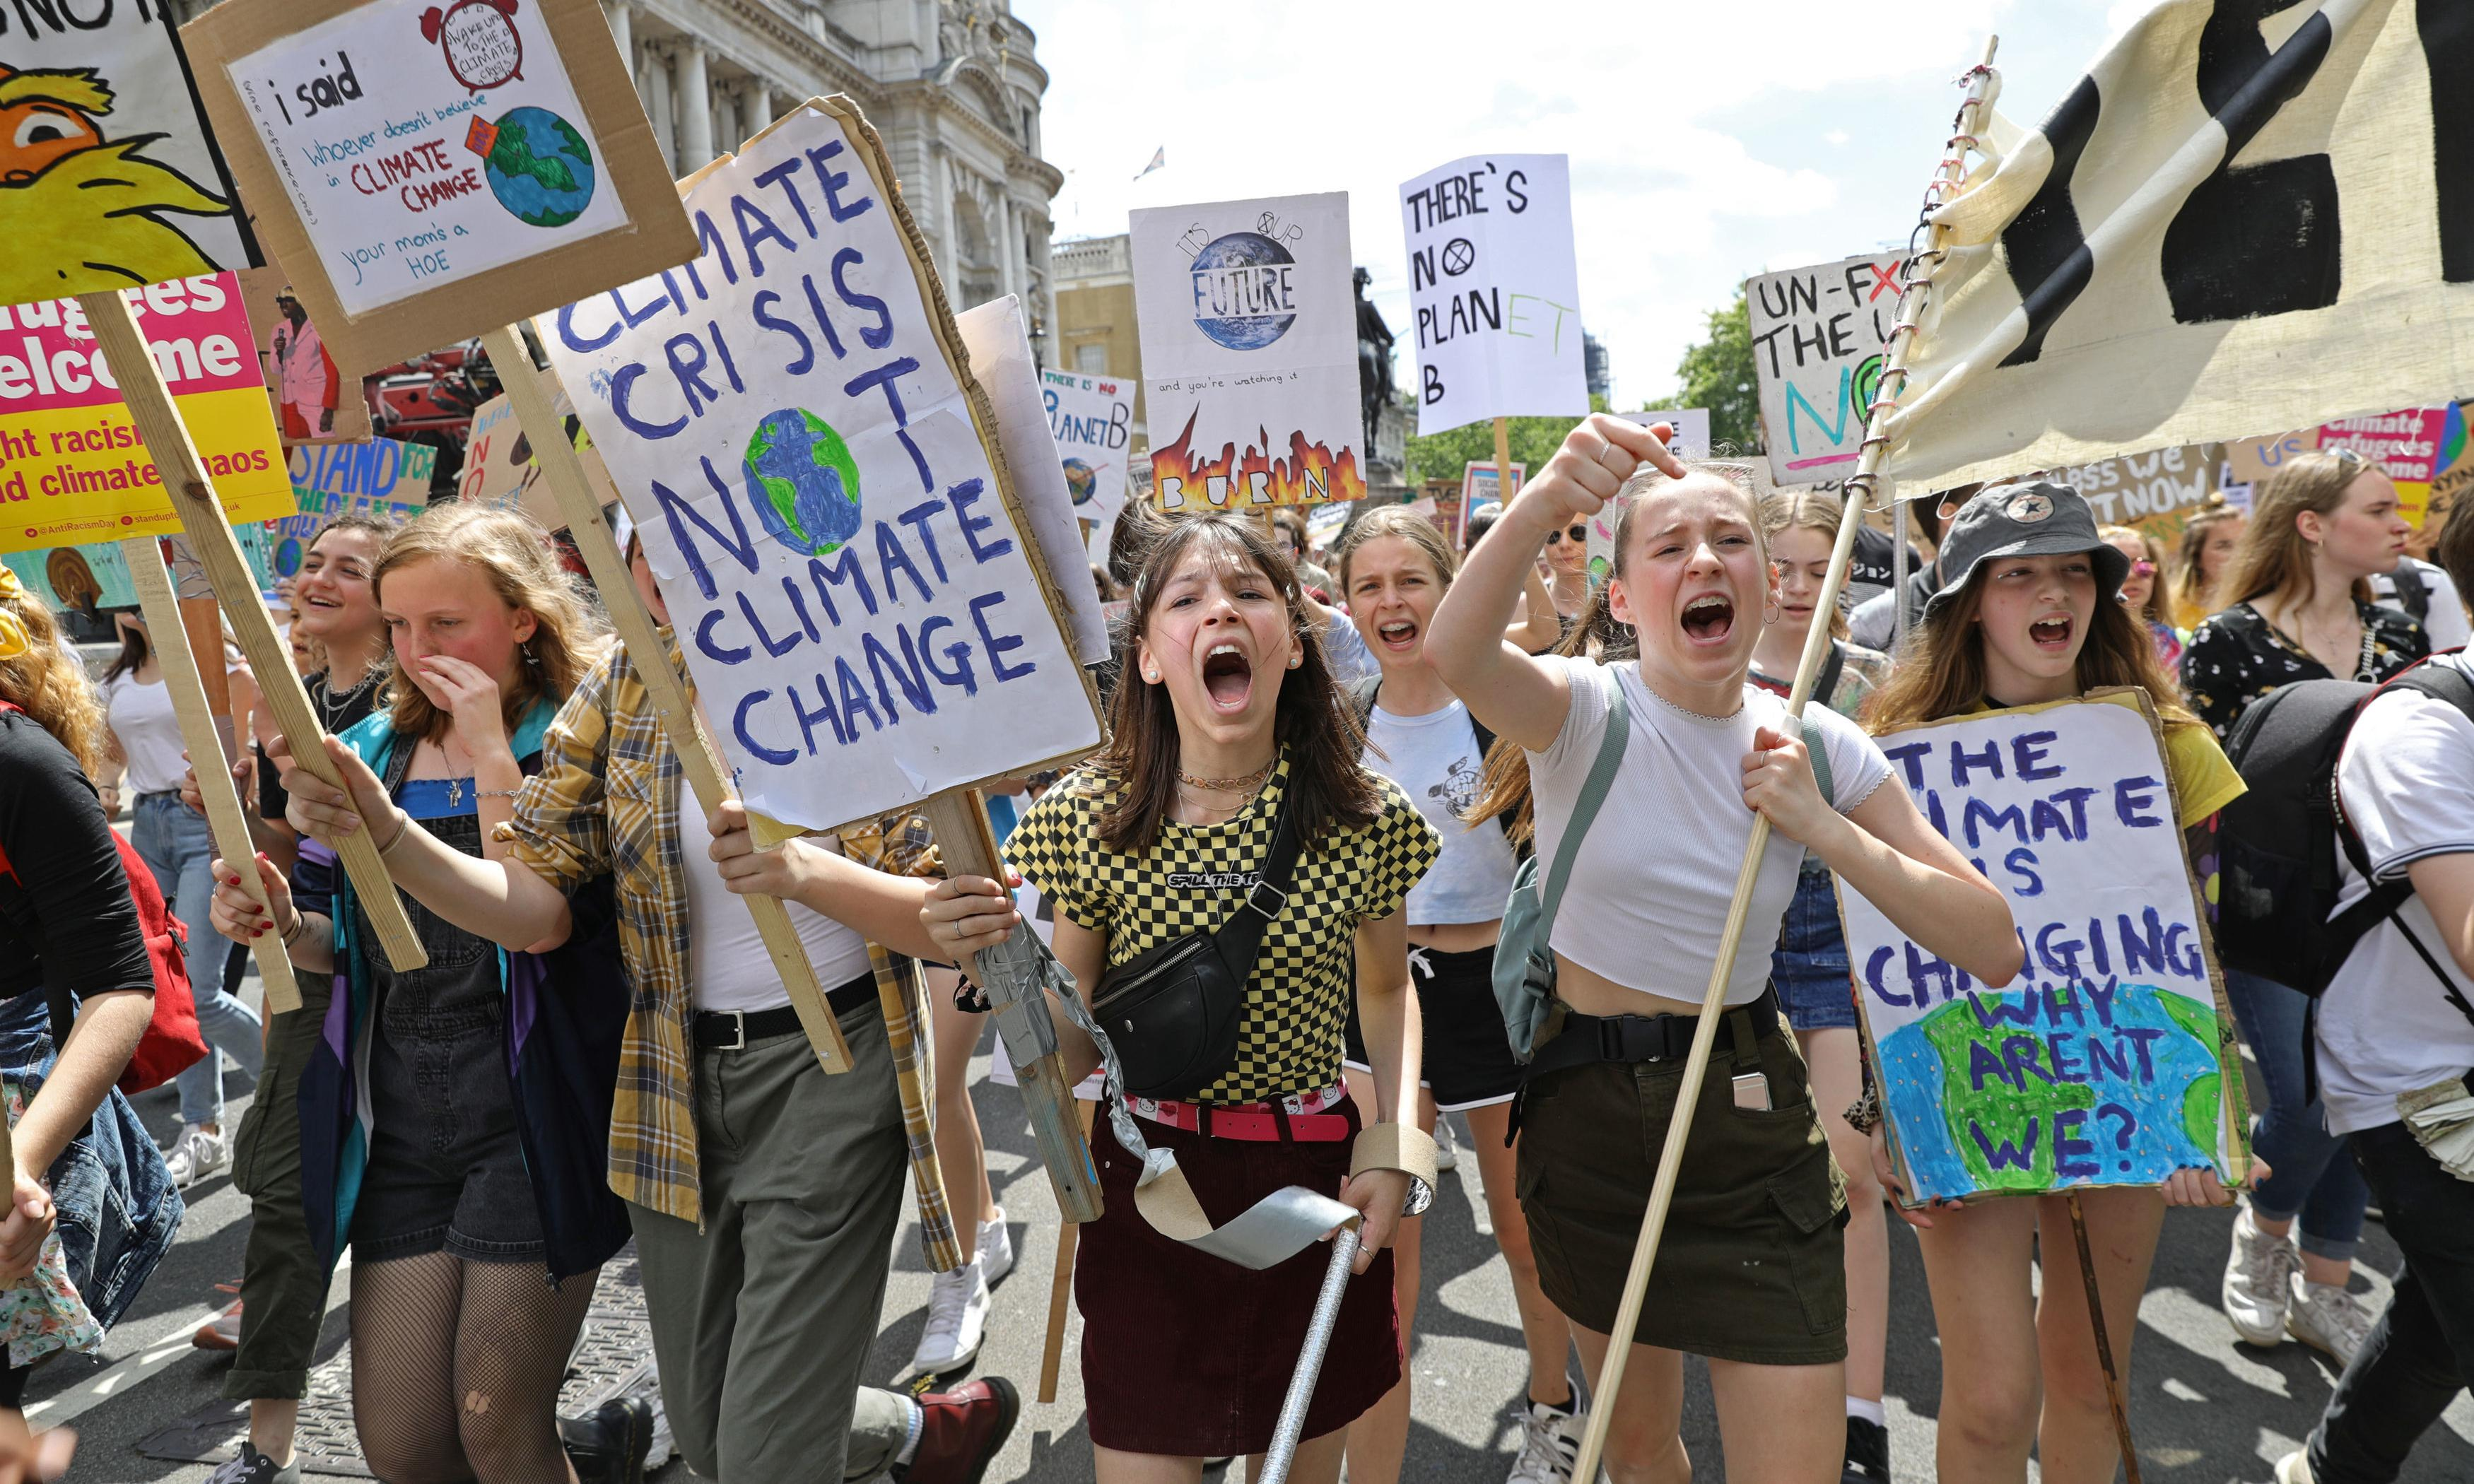 Two-thirds of Britons want faster action on climate, poll finds